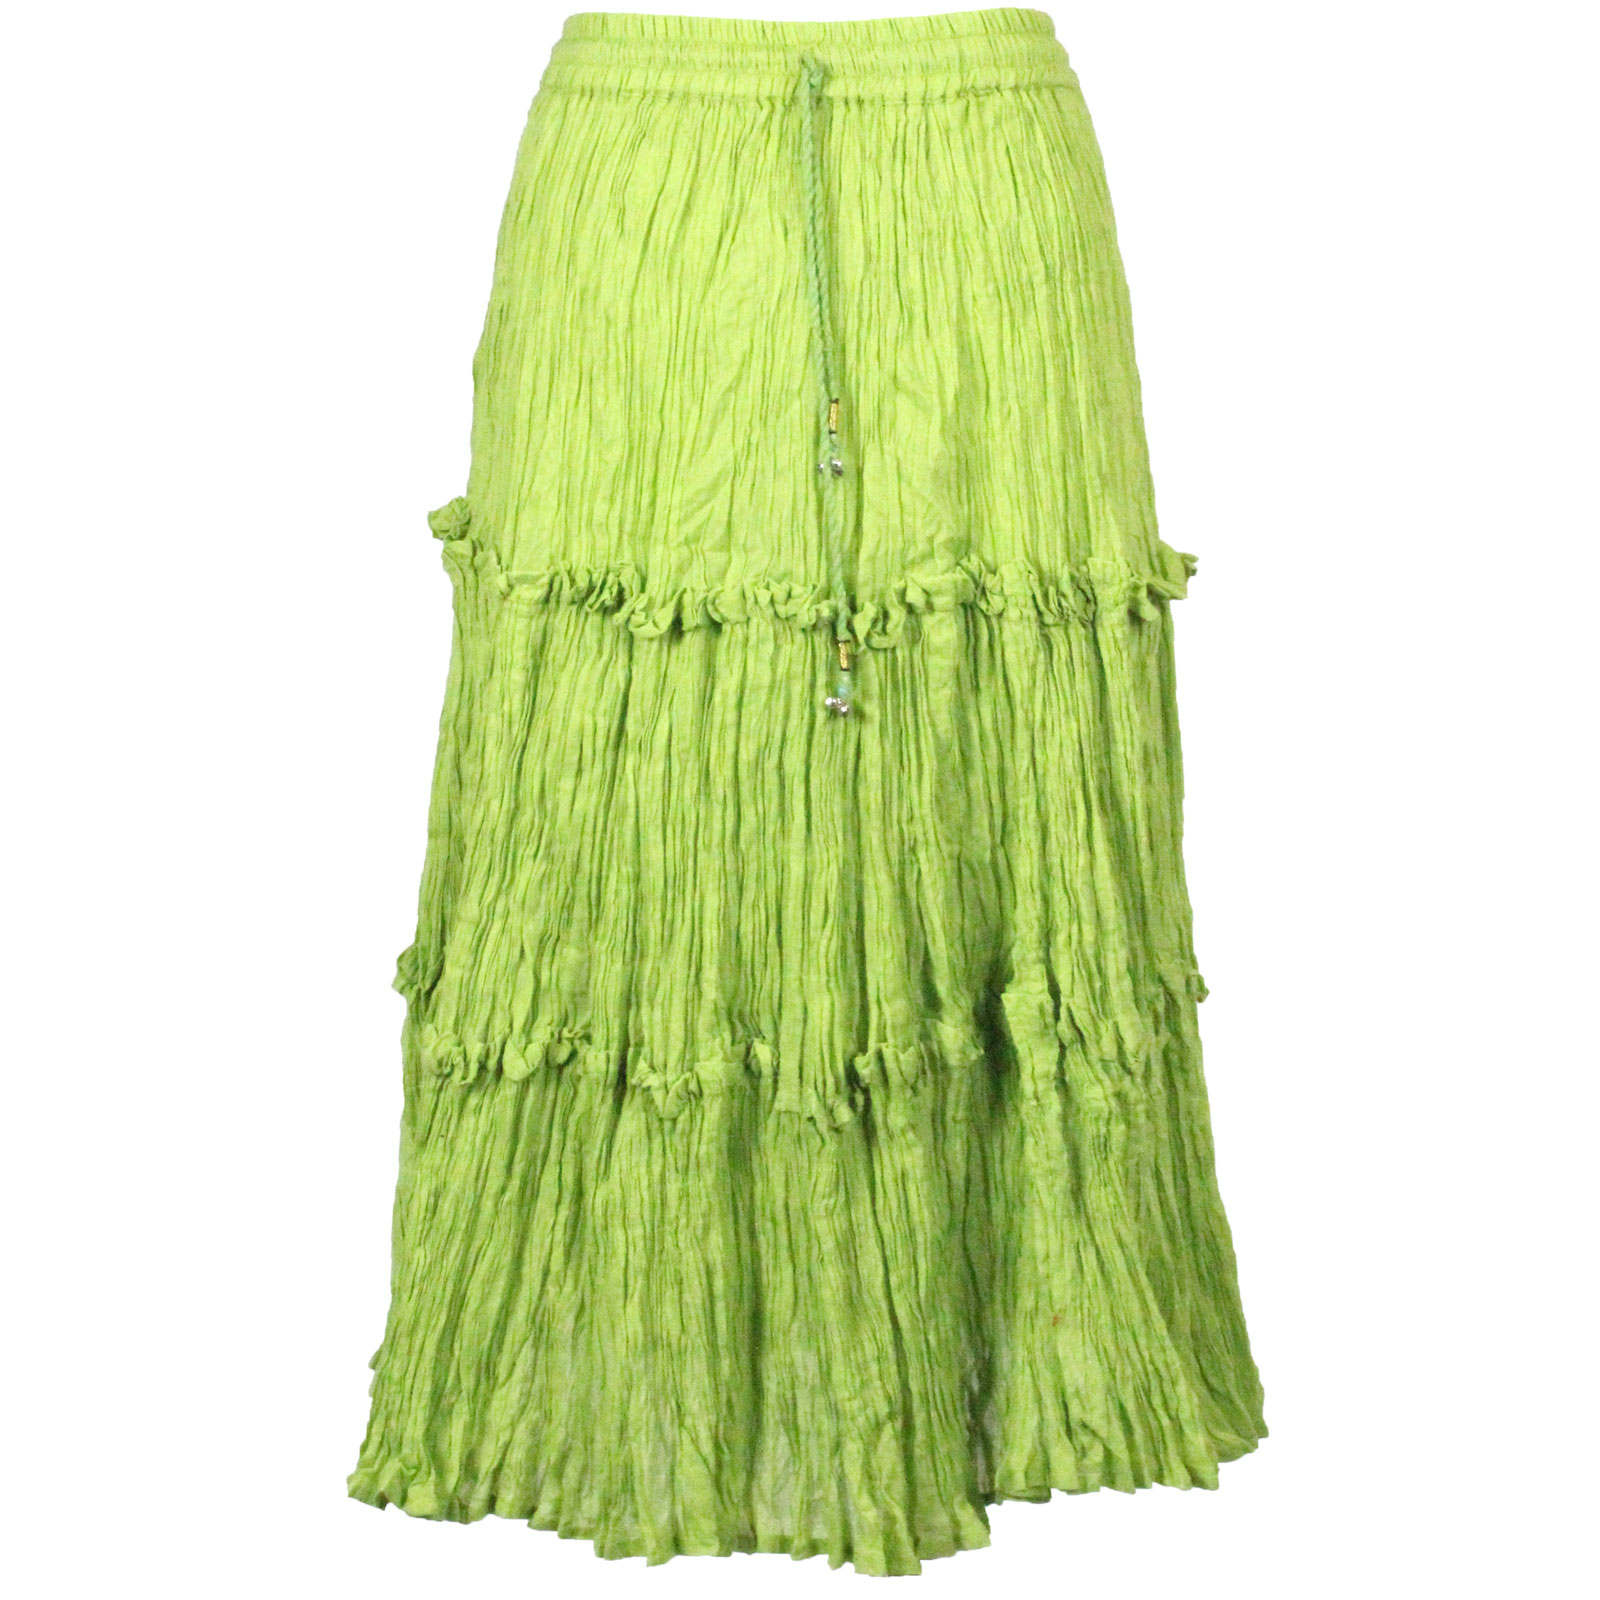 Wholesale Skirts - Cotton Three Tier Broomstick 500 & 529 Calf Length - Lime - One Size (S-XL)